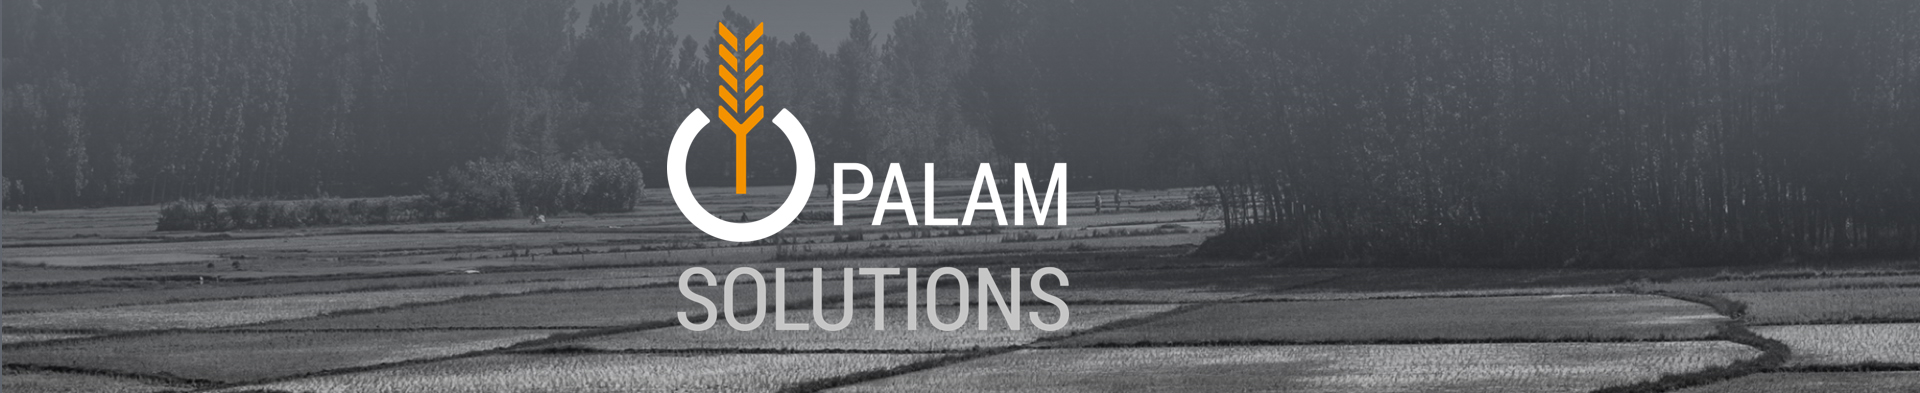 PalamSolution